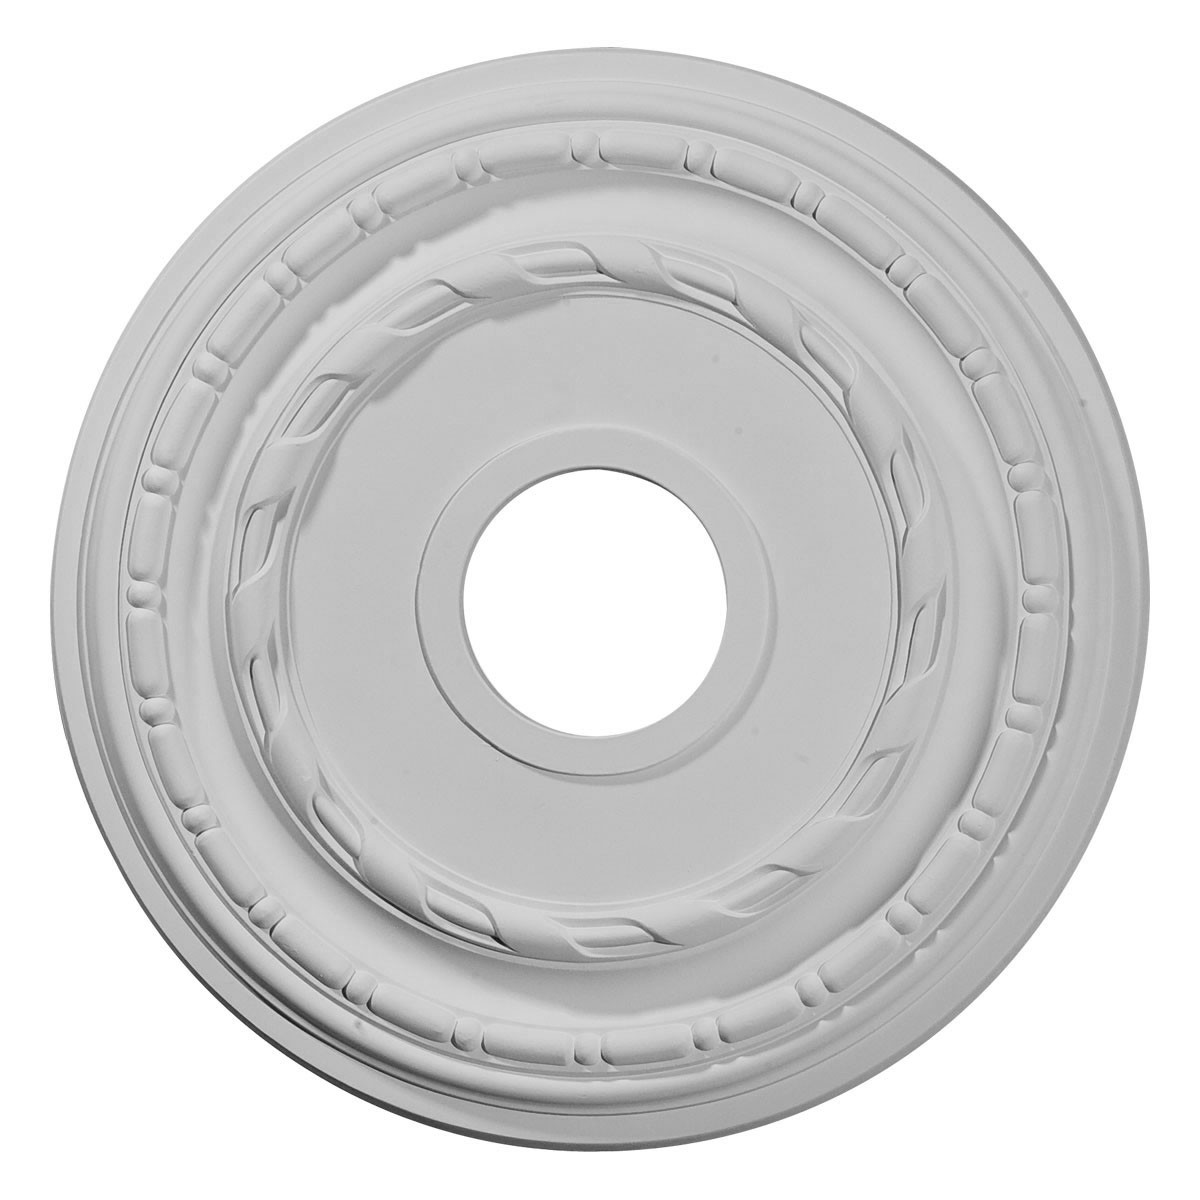 "EM-CM15DU - 15 3/8""OD x 3 5/8""ID x 1""P Dublin Ceiling Medallion (Fits Canopies up to 8 1/4"")"